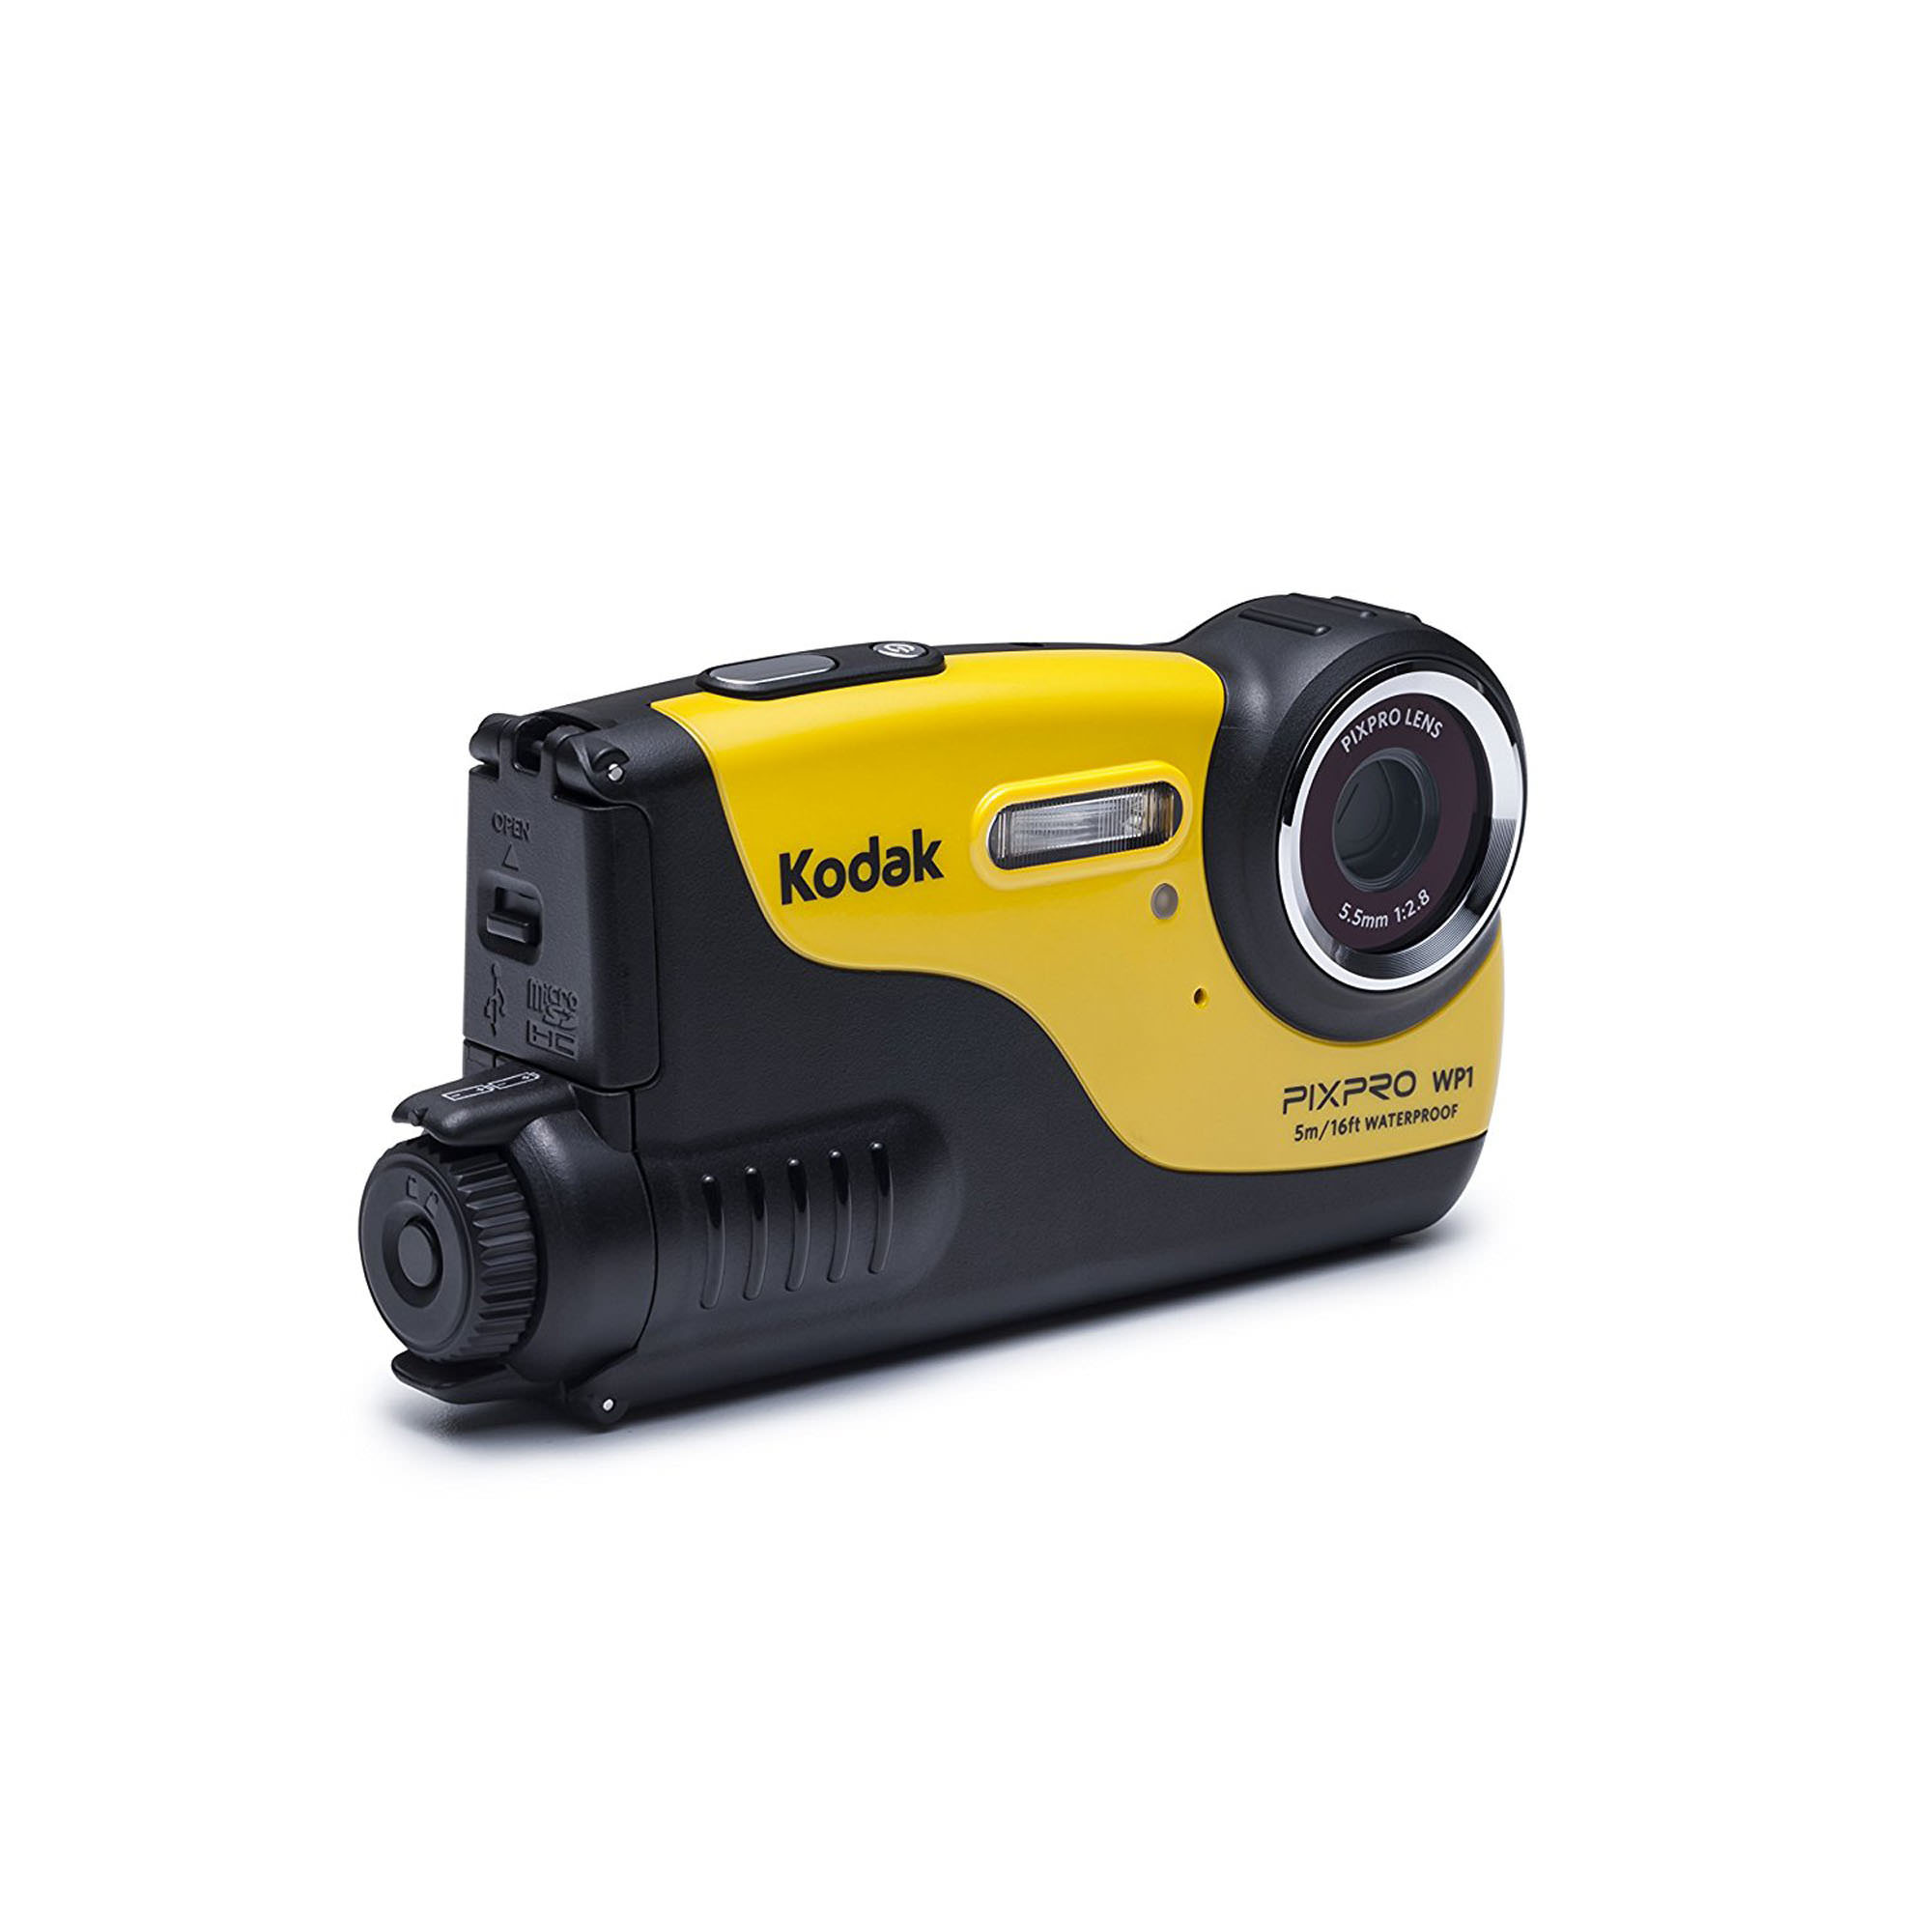 Kodak PIXPRO WP1 16MP 720P Waterproof, Shockproof, Dustproof Digital Camera (Yellow)